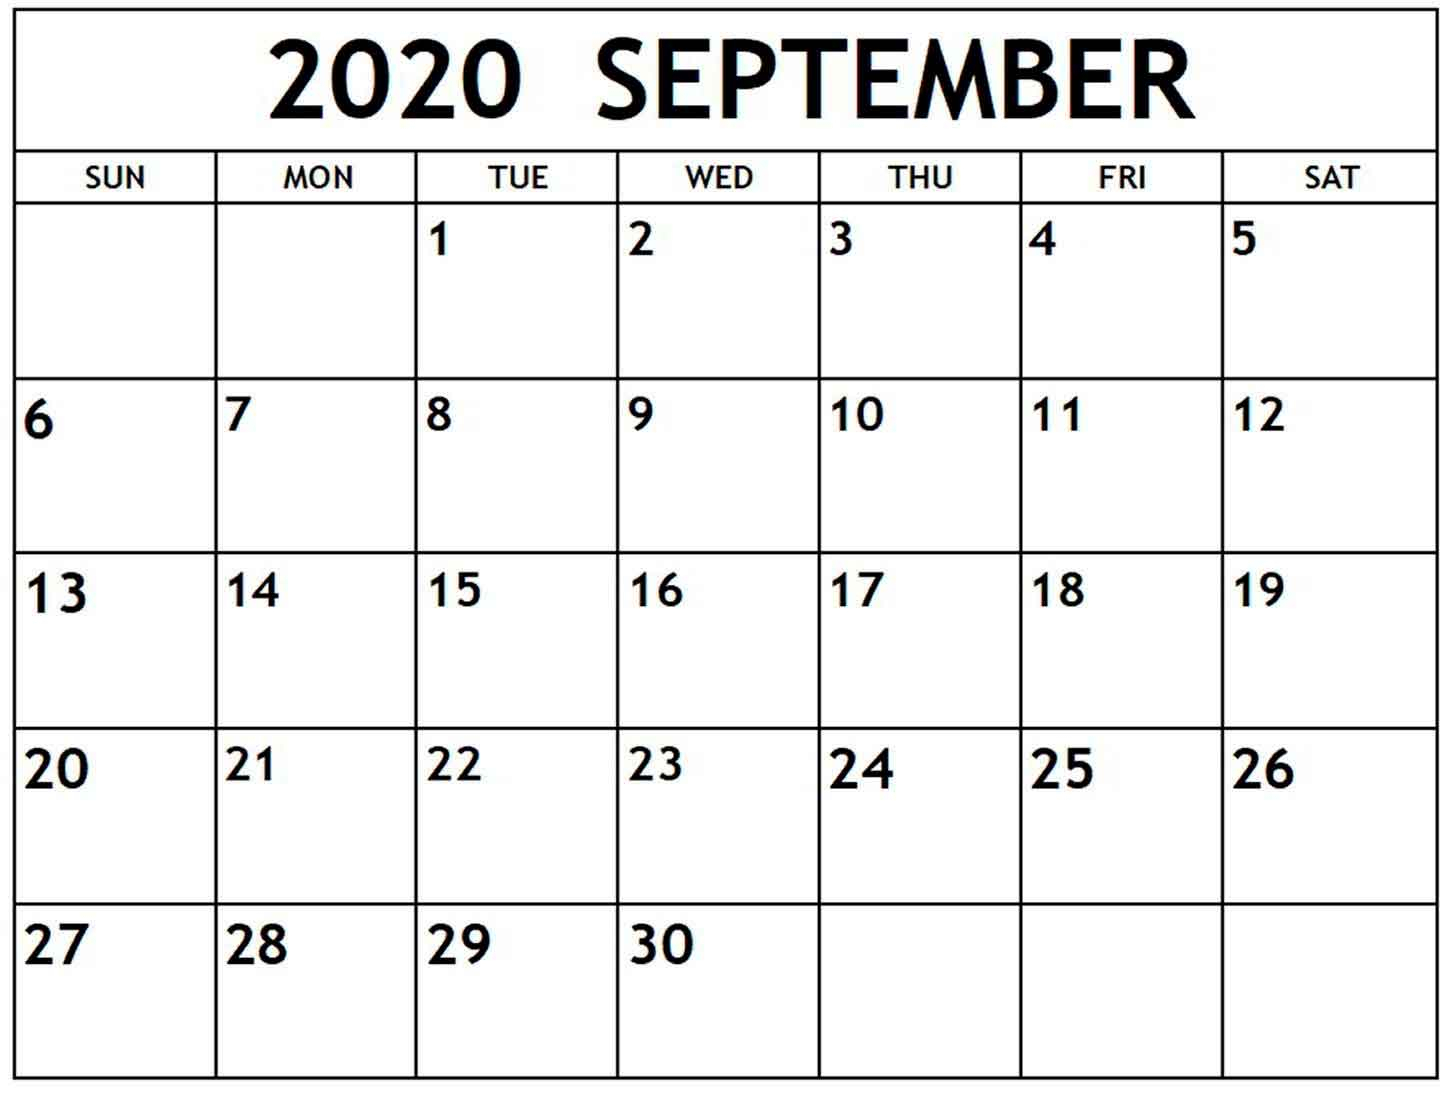 Blank Calendar September 2020 Free Download With Images. with regard to September Blank Calendar